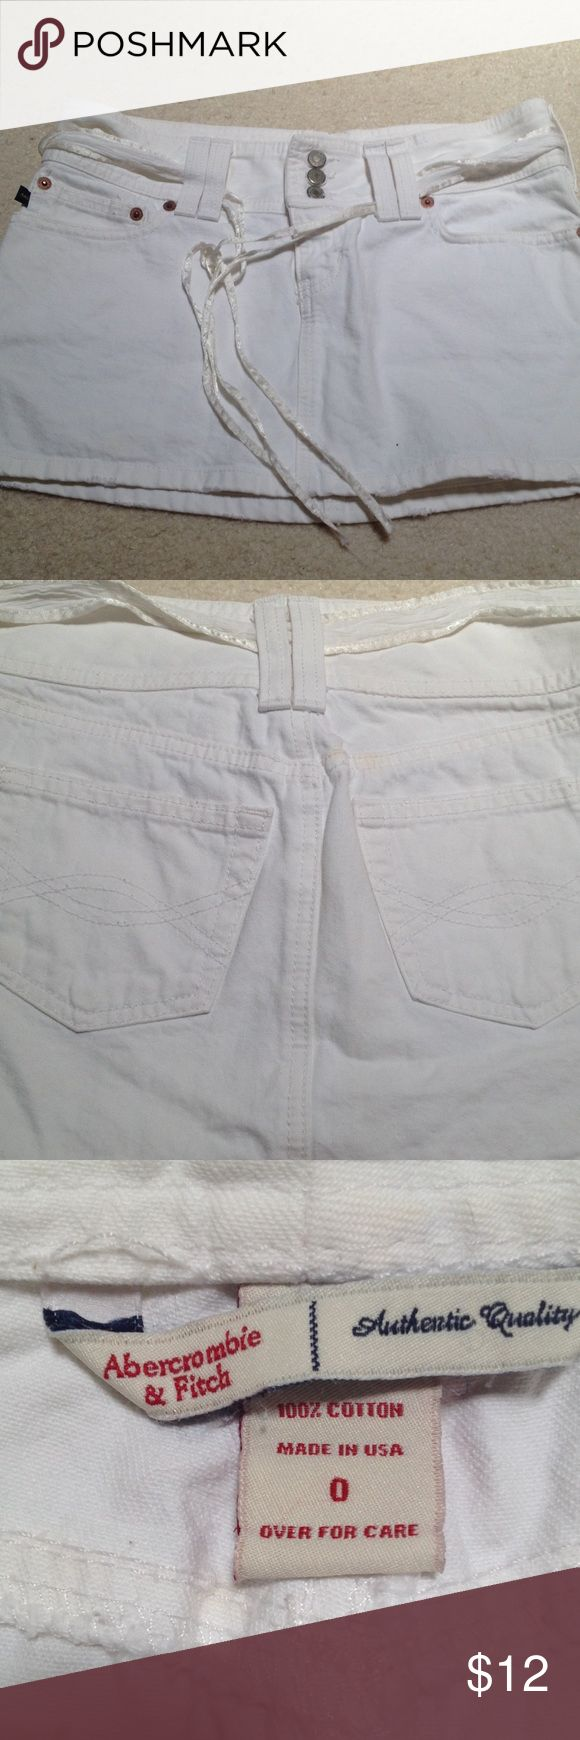 Abercrombie and Fitch white denim mini skirt sz 0 Abercrombie and Fitch white denim mini skirt sz 0 with tie detail. It has a slightly distressed hem (seen in last pic).  The second pic shows a slight stain above the right pocket. Not that noticeable but it's there. Abercrombie & Fitch Skirts Mini